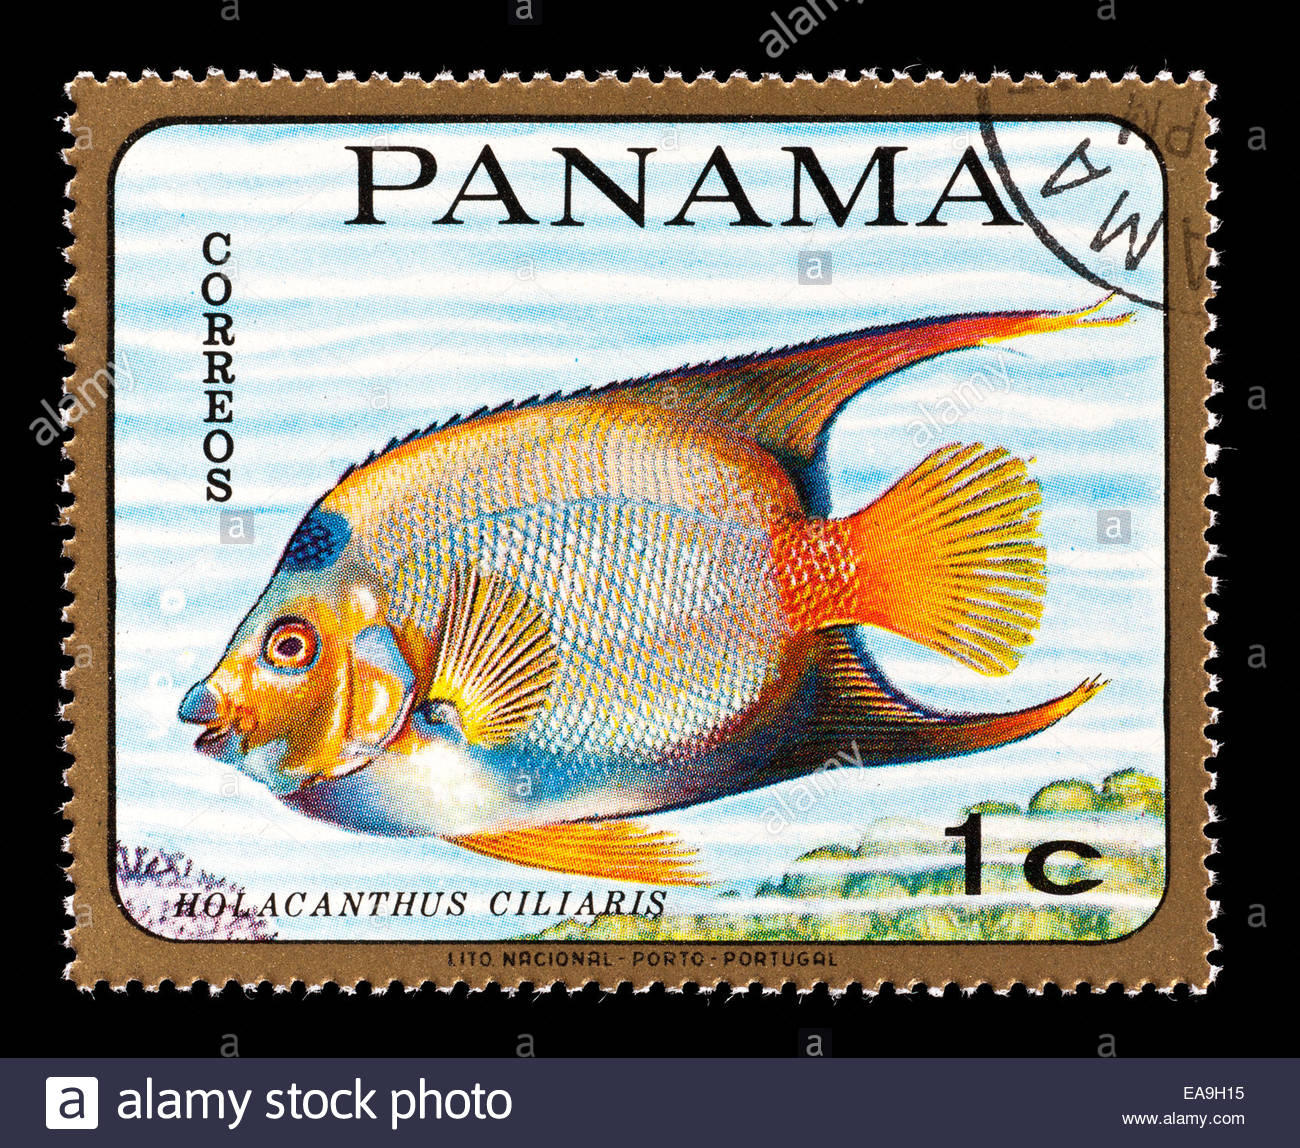 Panama Queen clipart #1, Download drawings